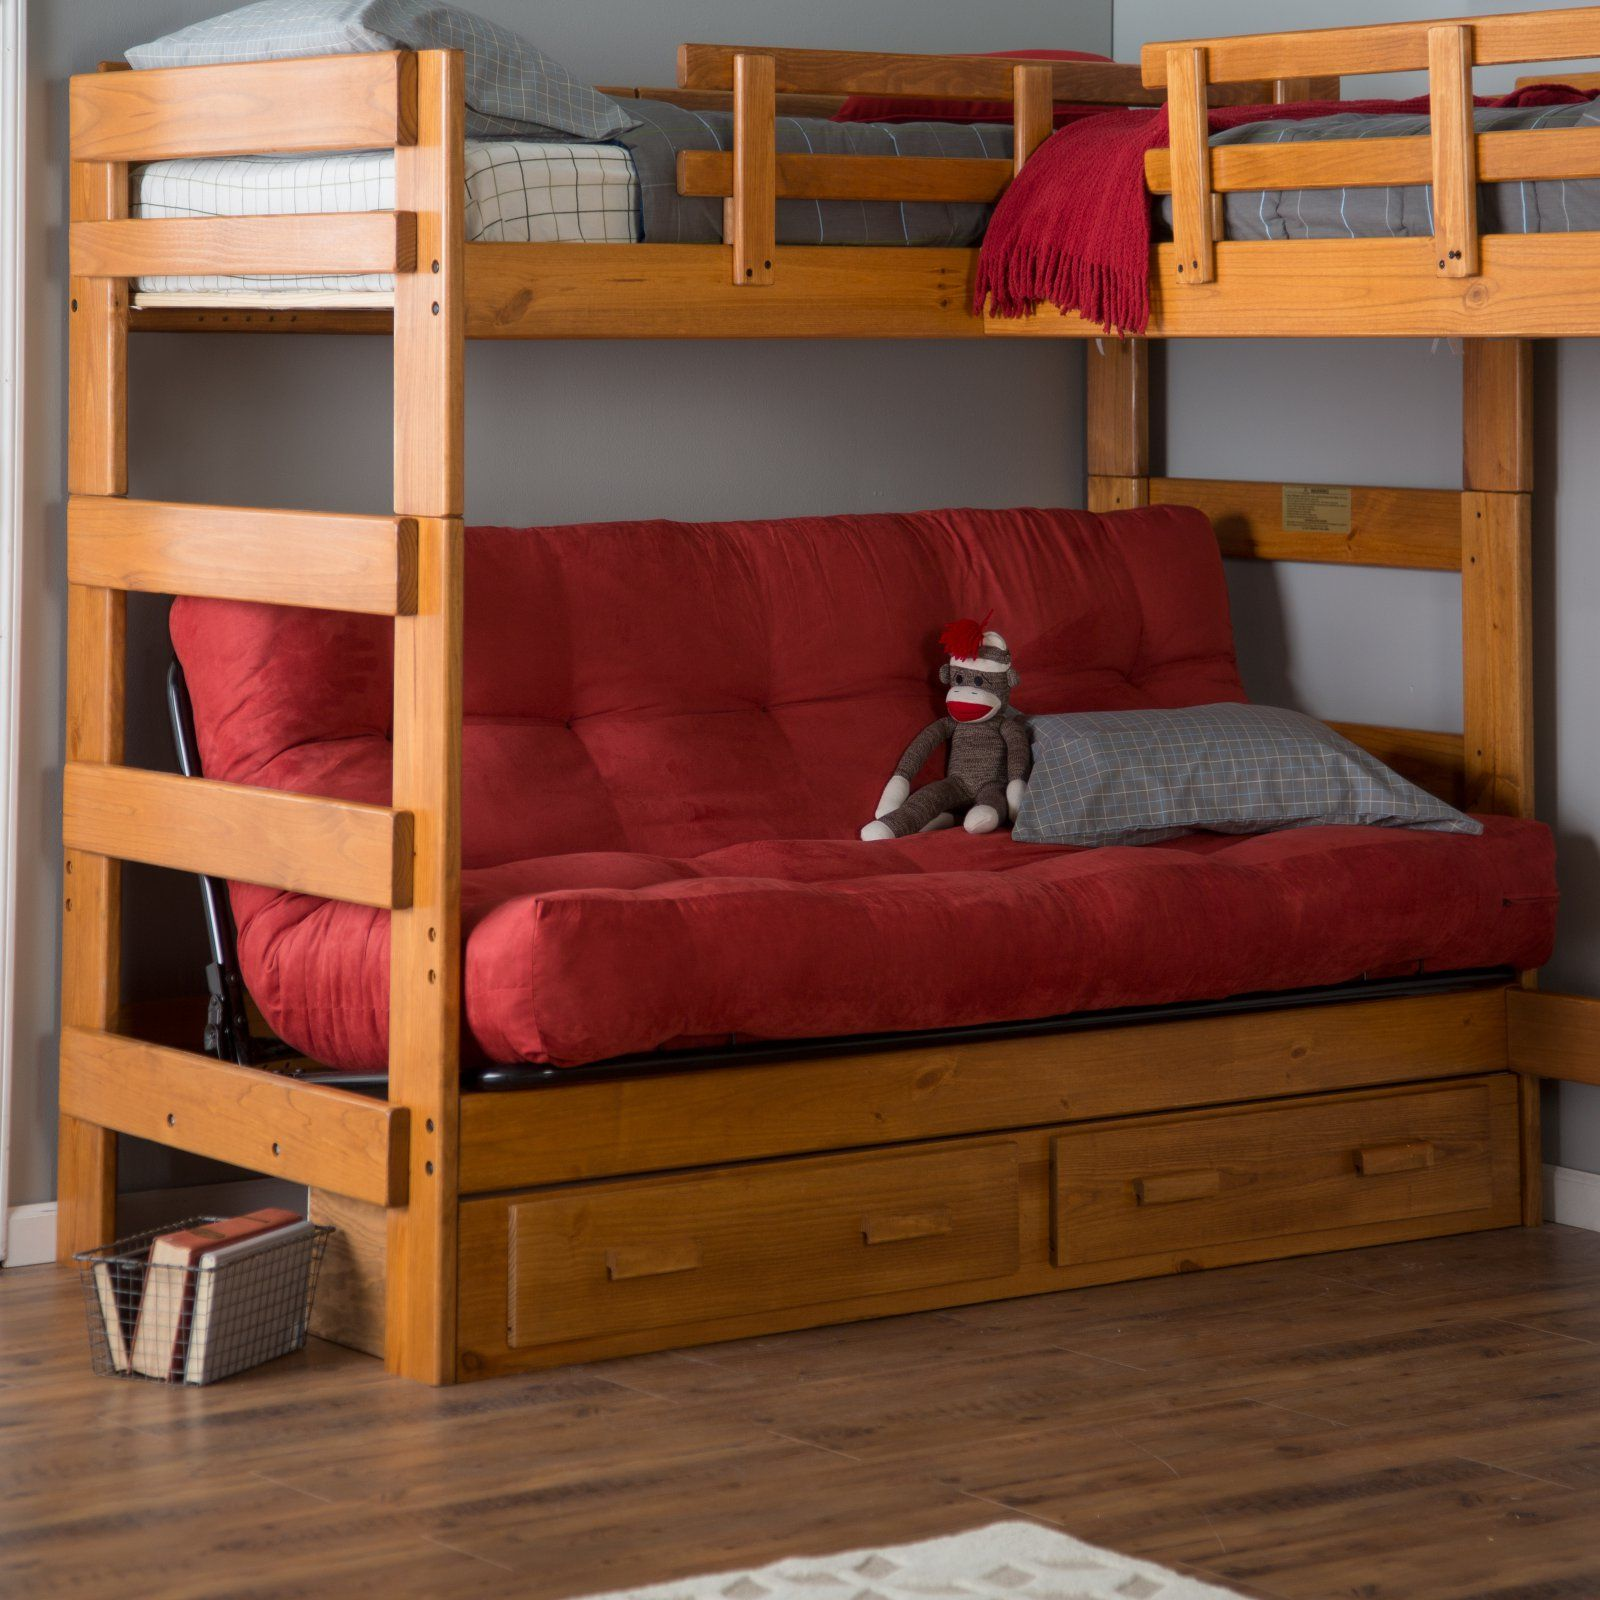 Woodcrest Heartland LShaped Futon Bunk Bed with Extra